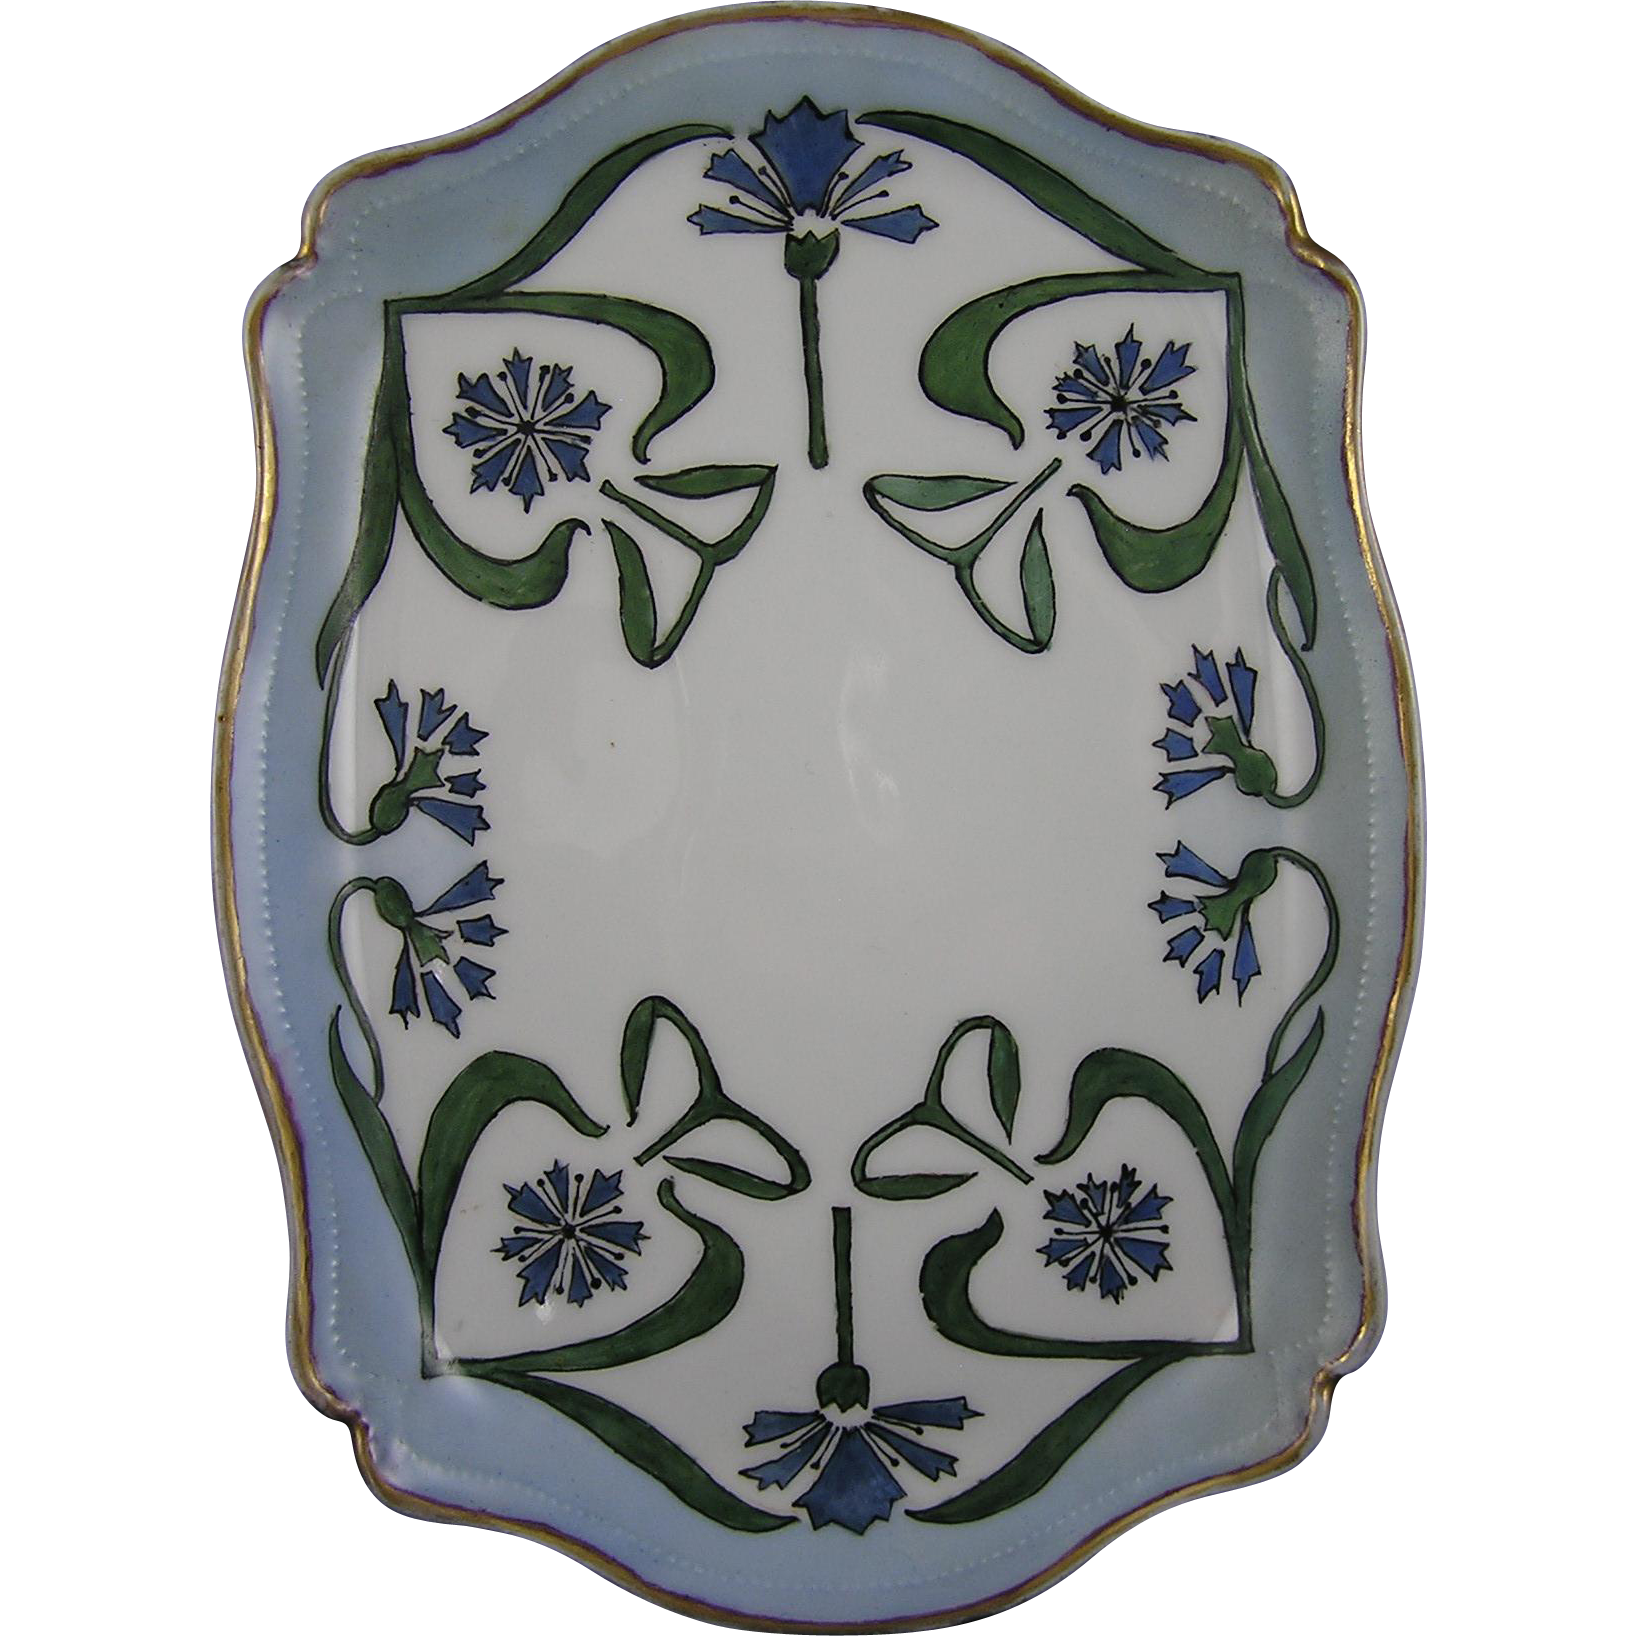 Tressemann & Vogt (T&V) Limoges Arts & Crafts Cornflower Design Tray (c.1892-1907)